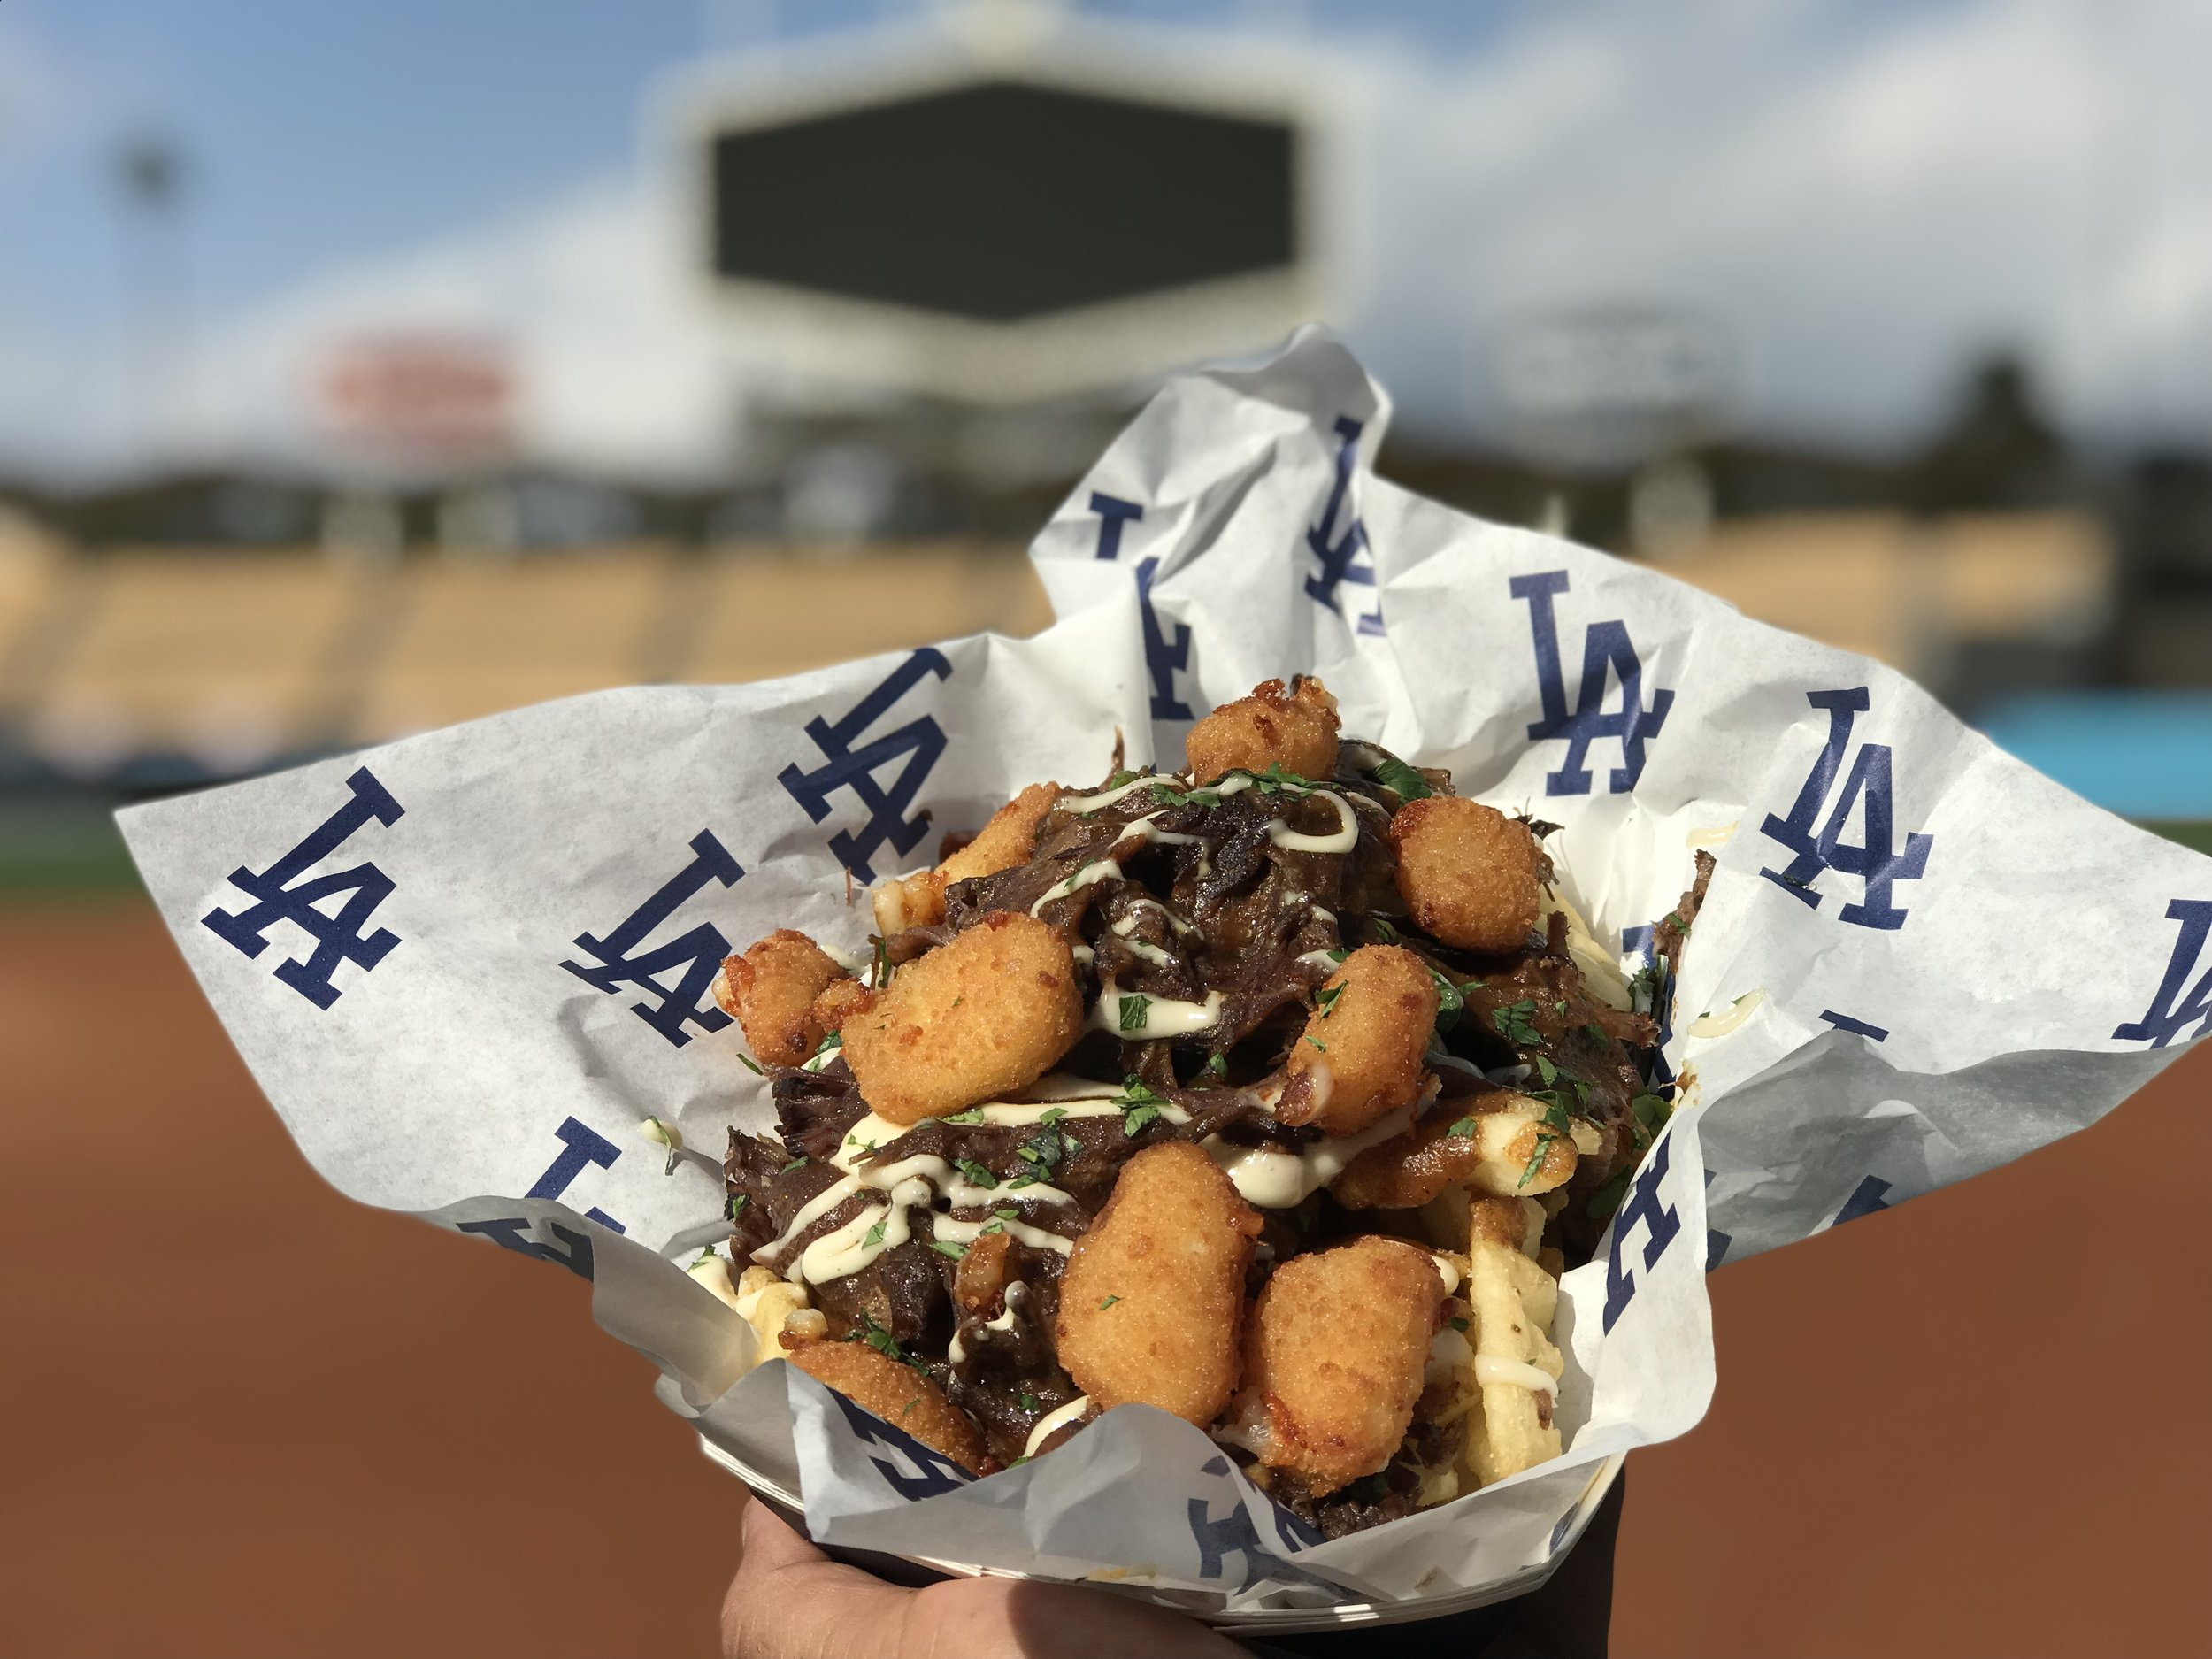 SHORT RIB WAFFLE FRIES     Braised short ribs, red wine reduction sauce over waffle fries topped with crispy cheese curds located at   Bud & Burgers on Field level (section 47) & Top Deck Dogs Too on Top Deck (section 4)